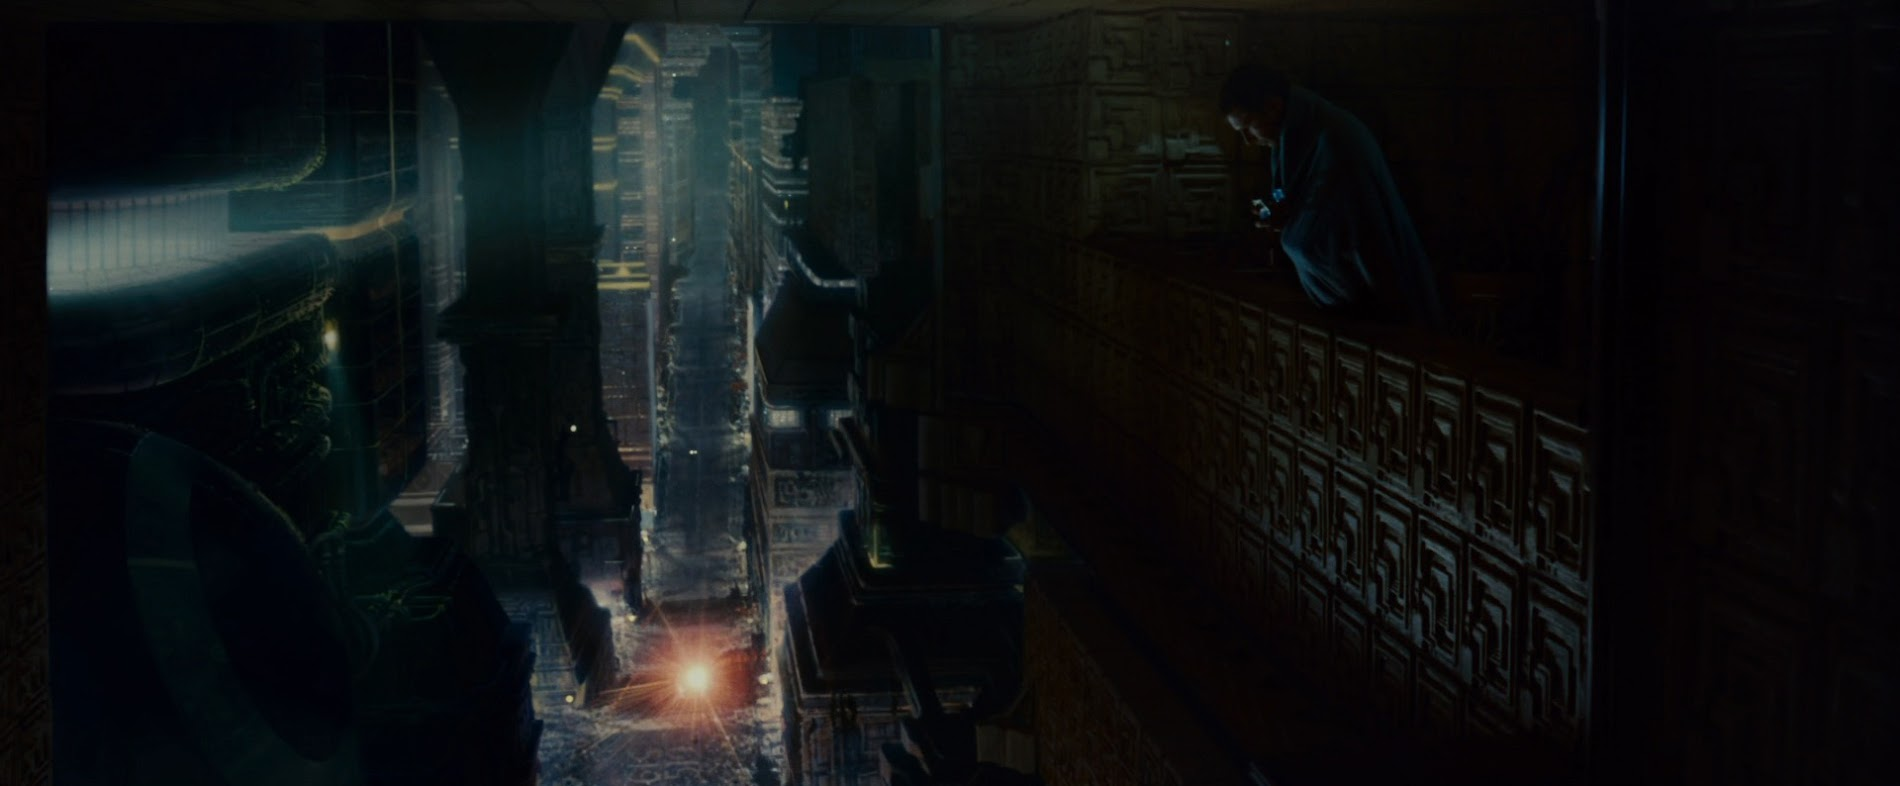 Barry Hay The Beautiful Film Frames: Blade Runner (1982) Blu-ray